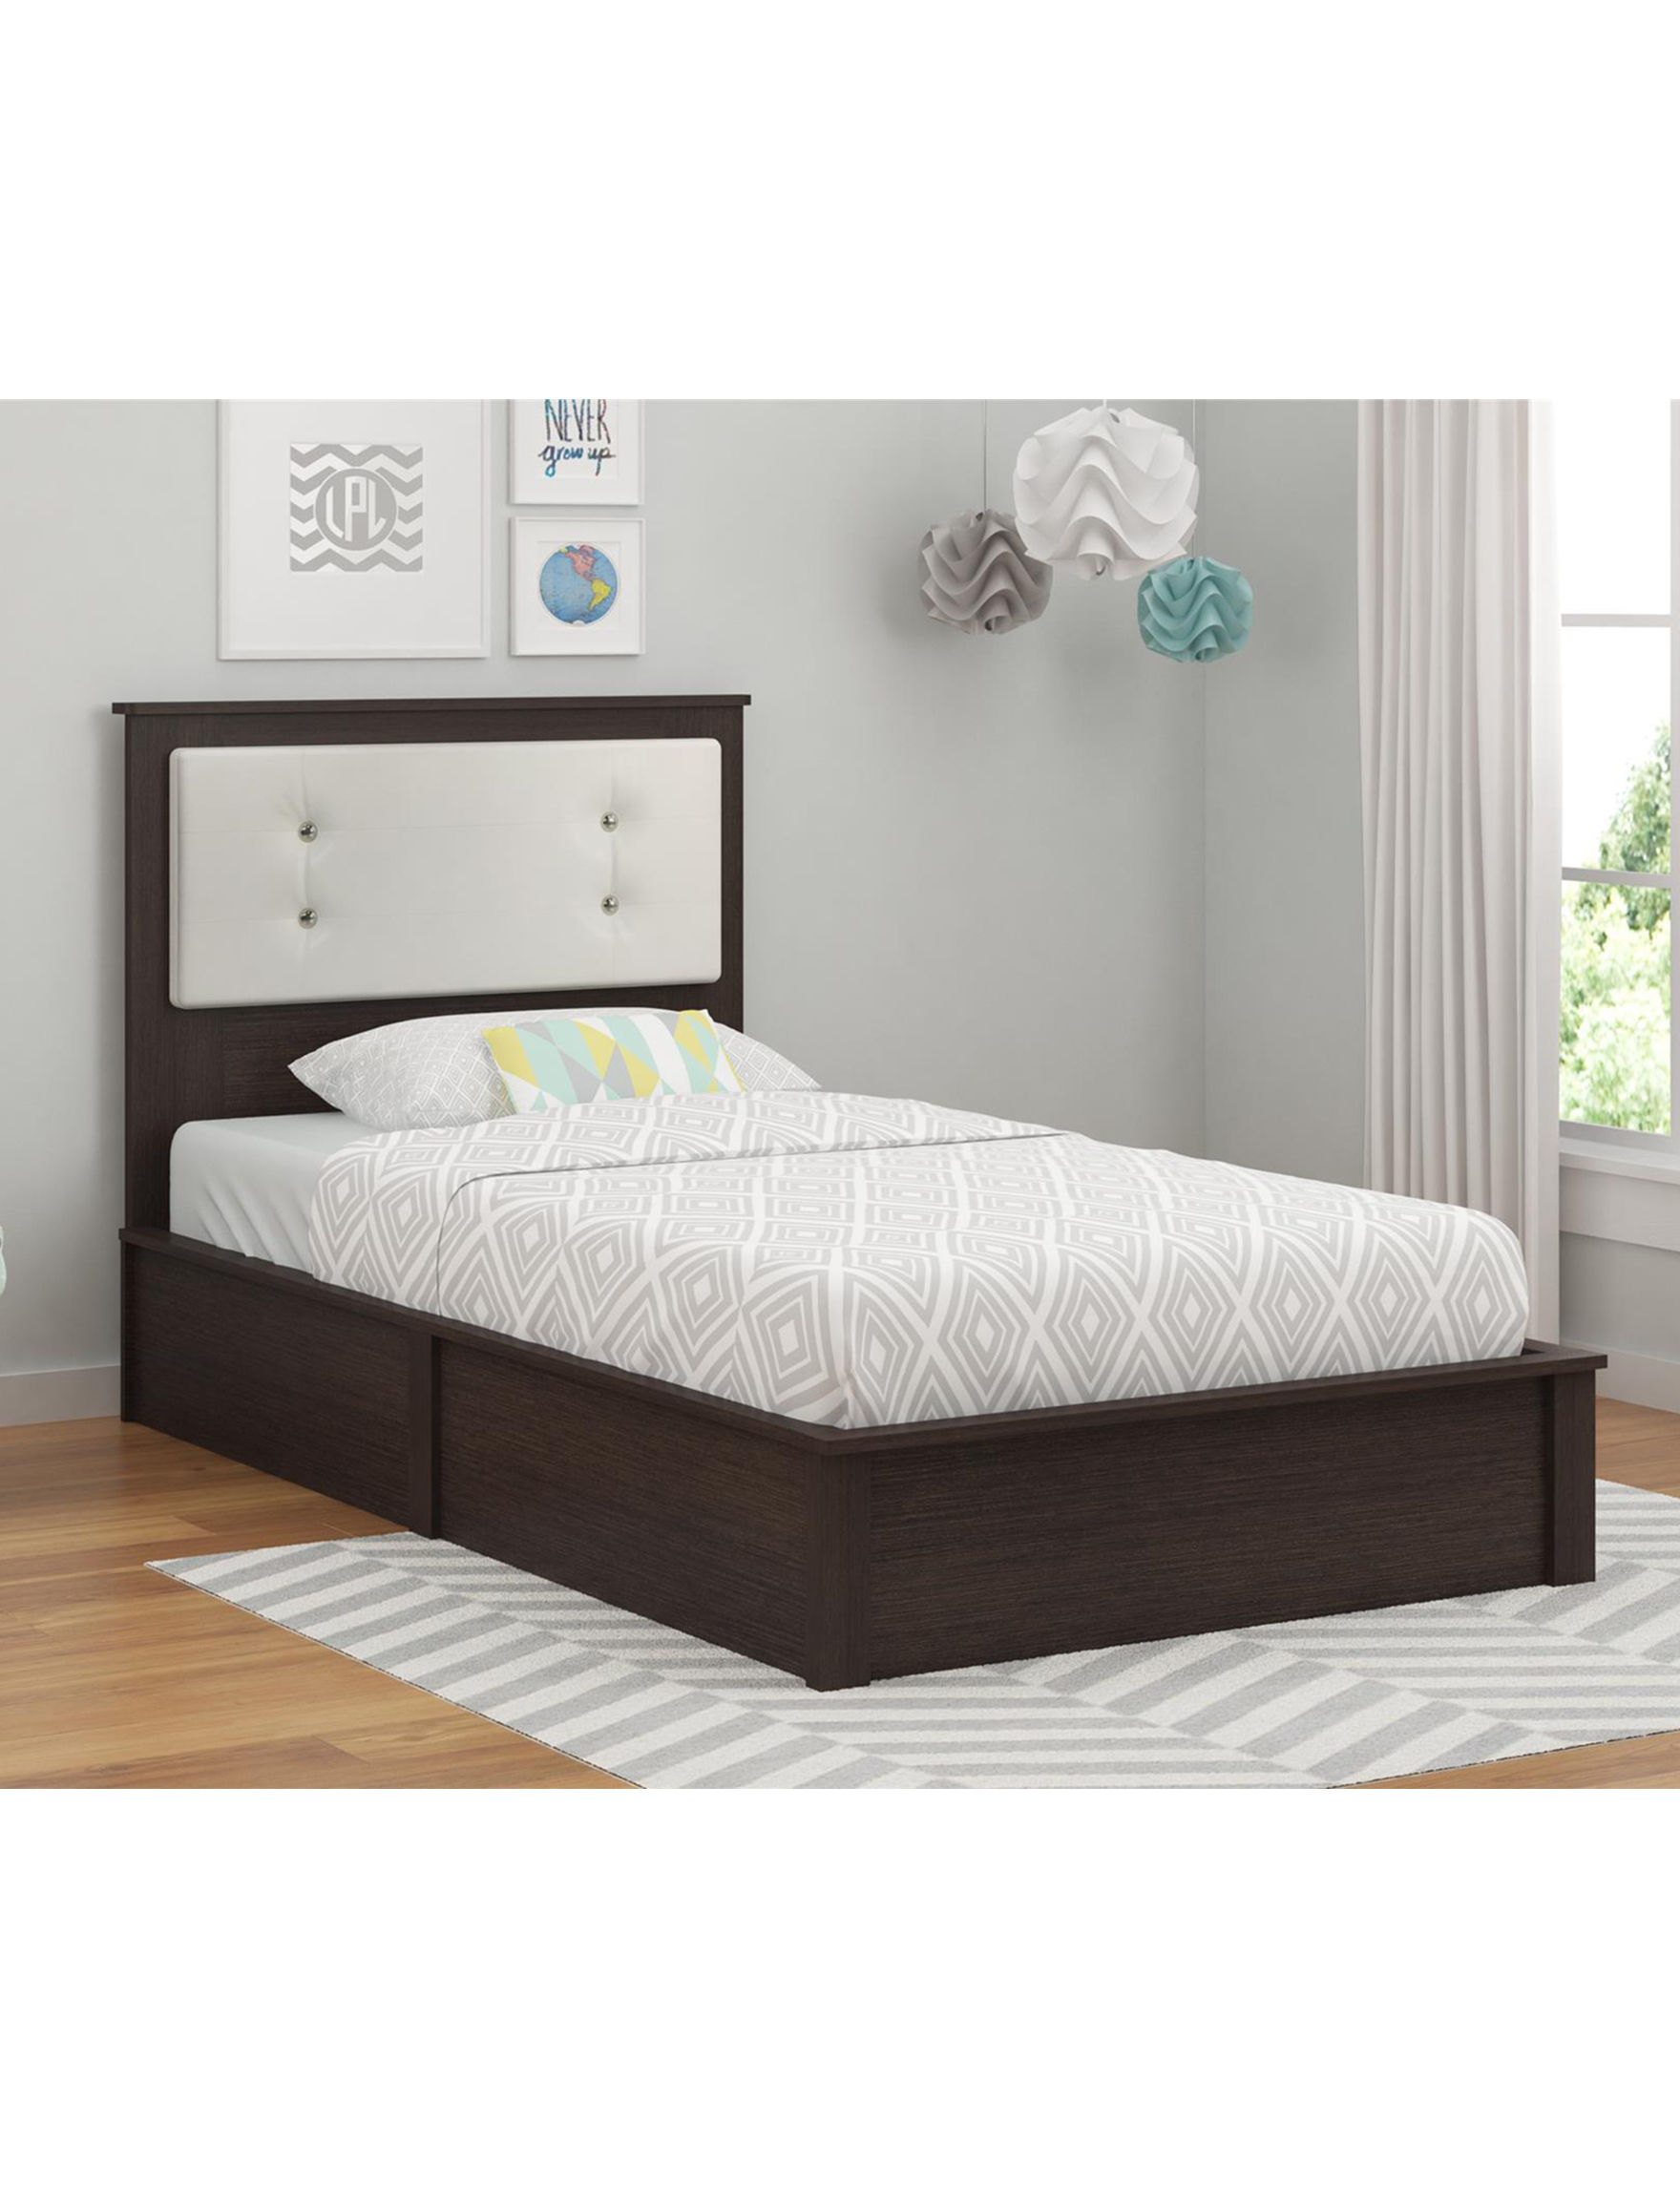 Ameriwood Brown / White Beds & Headboards Bedroom Furniture